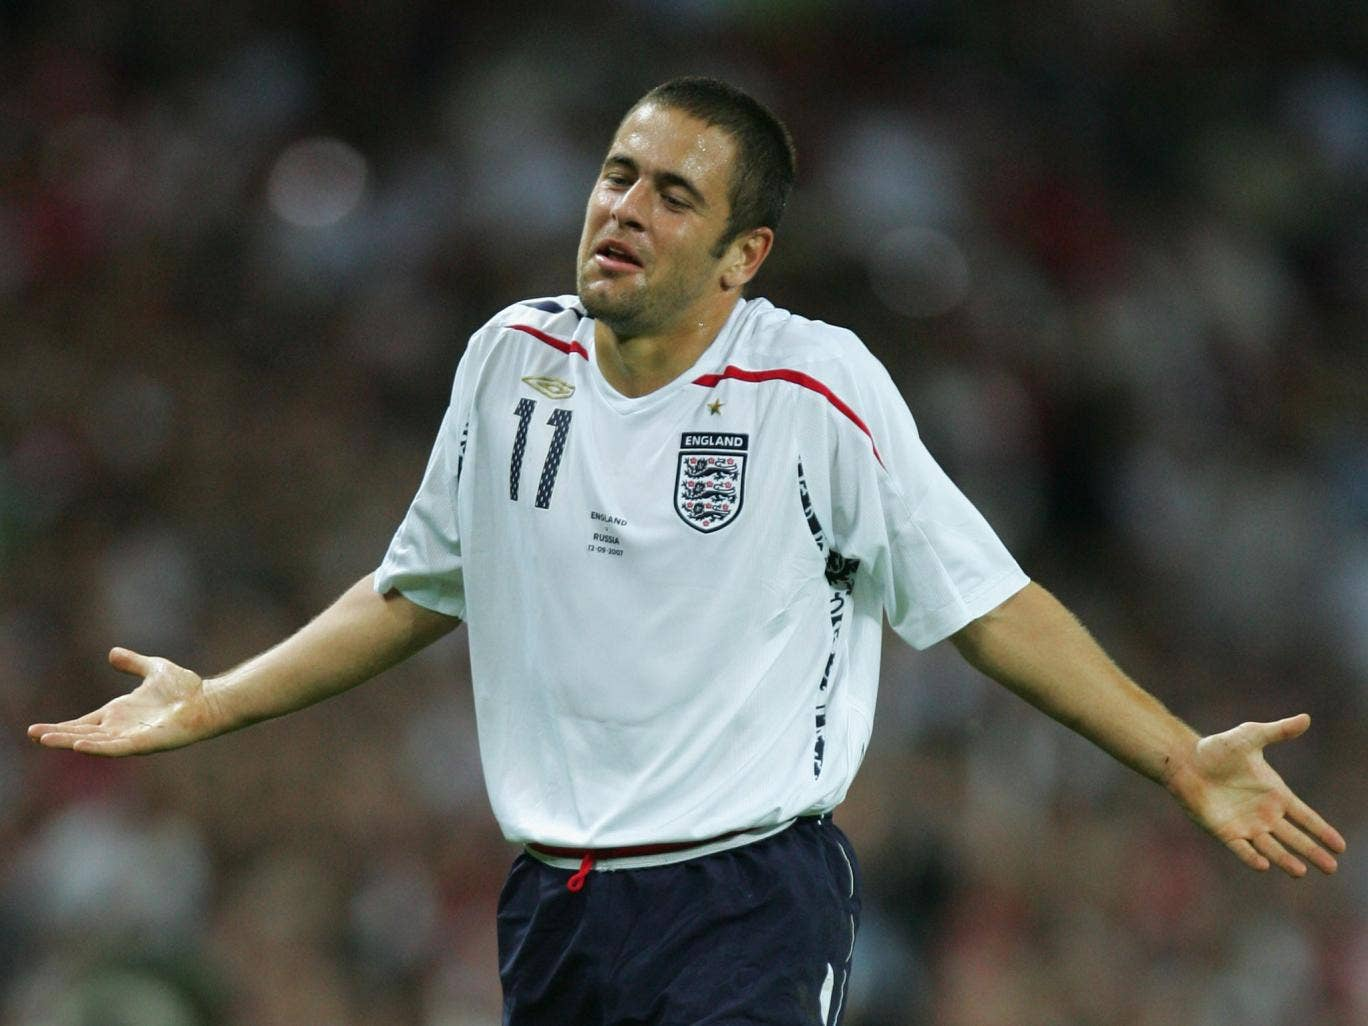 Joe Cole has made 56 England appearances and is one of 11 players from his country to have featured at three World Cups